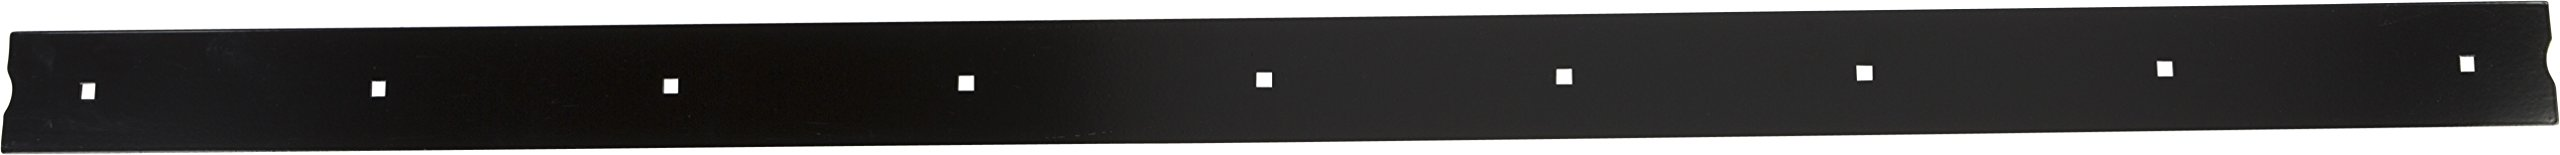 Open Trail CC-12-0160 Wear Bar for Cycle Country Plows - 60in.